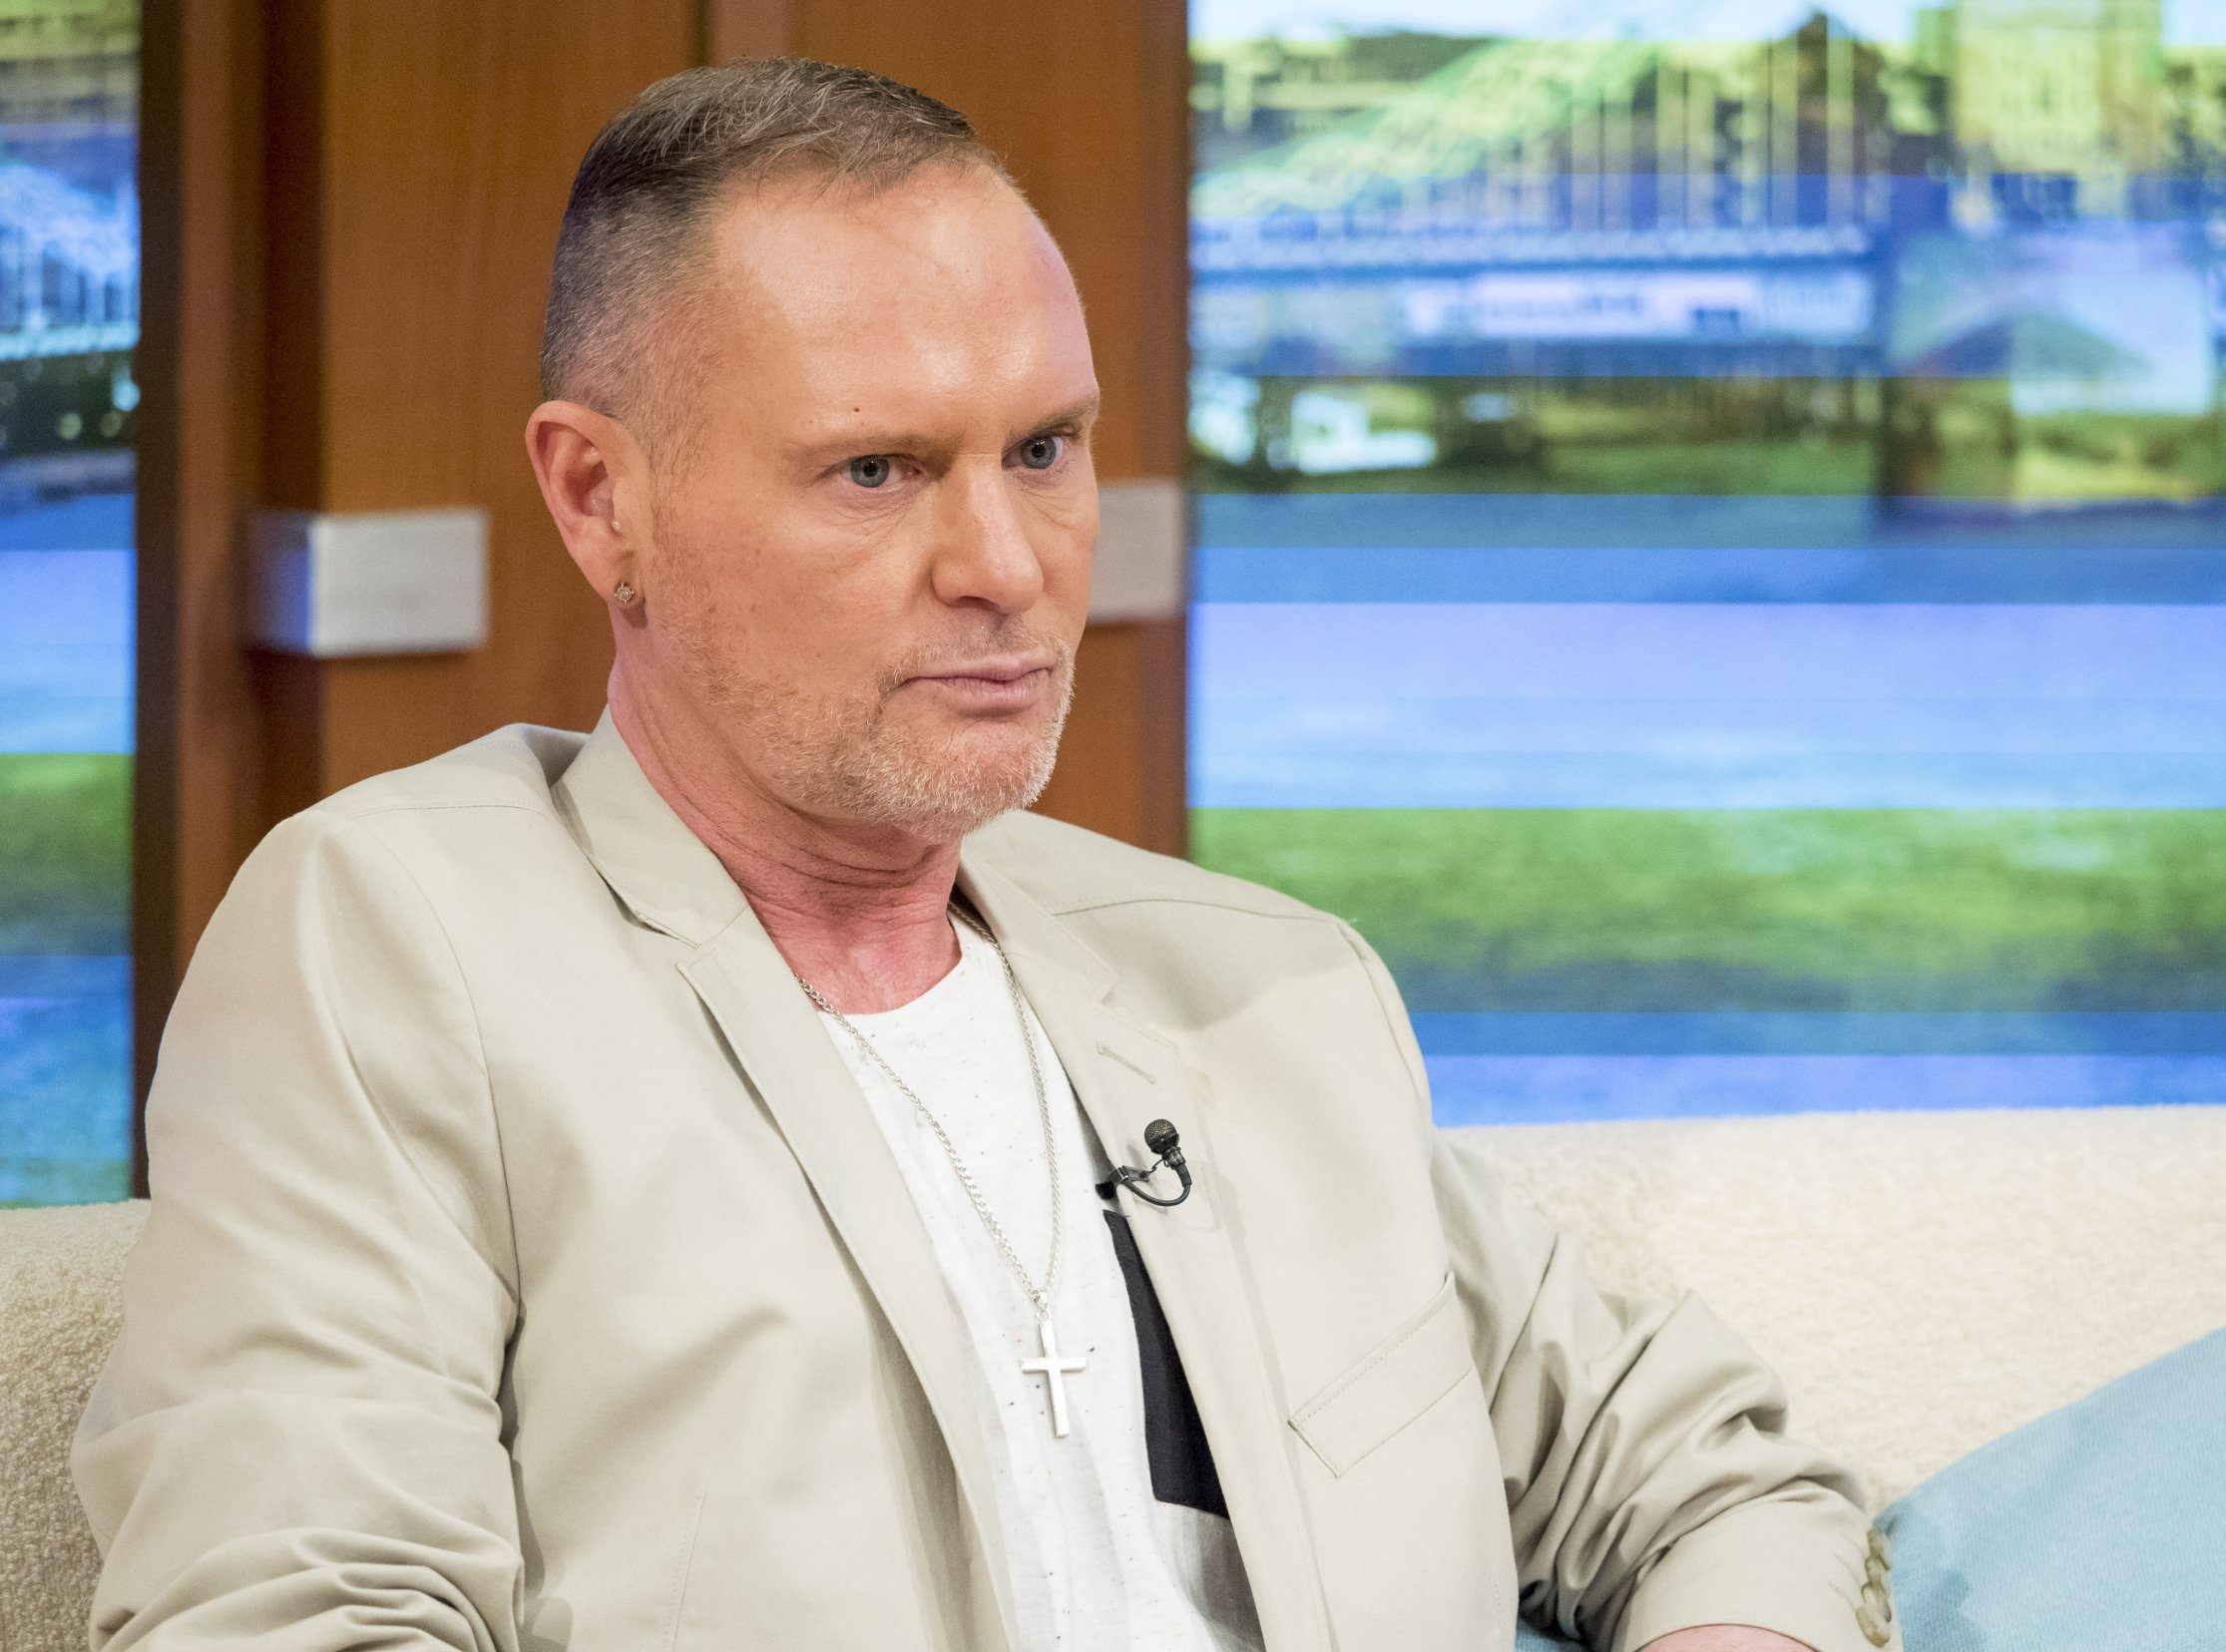 Paul Gascoigne confronted burglars trying to rob neighbour's home